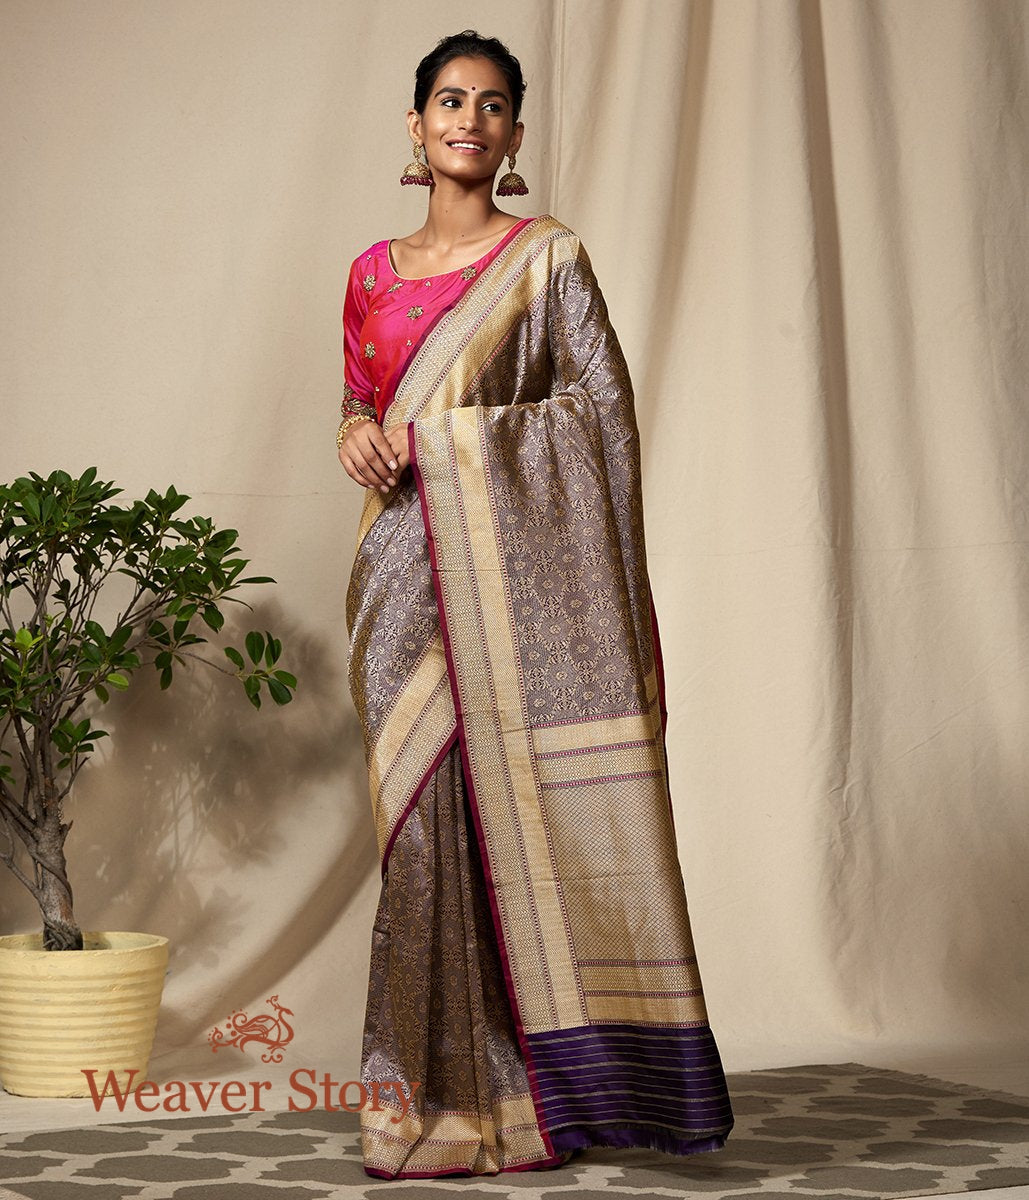 Handwoven Purple Kimkhab Banarasi Saree with Wine Selvedge